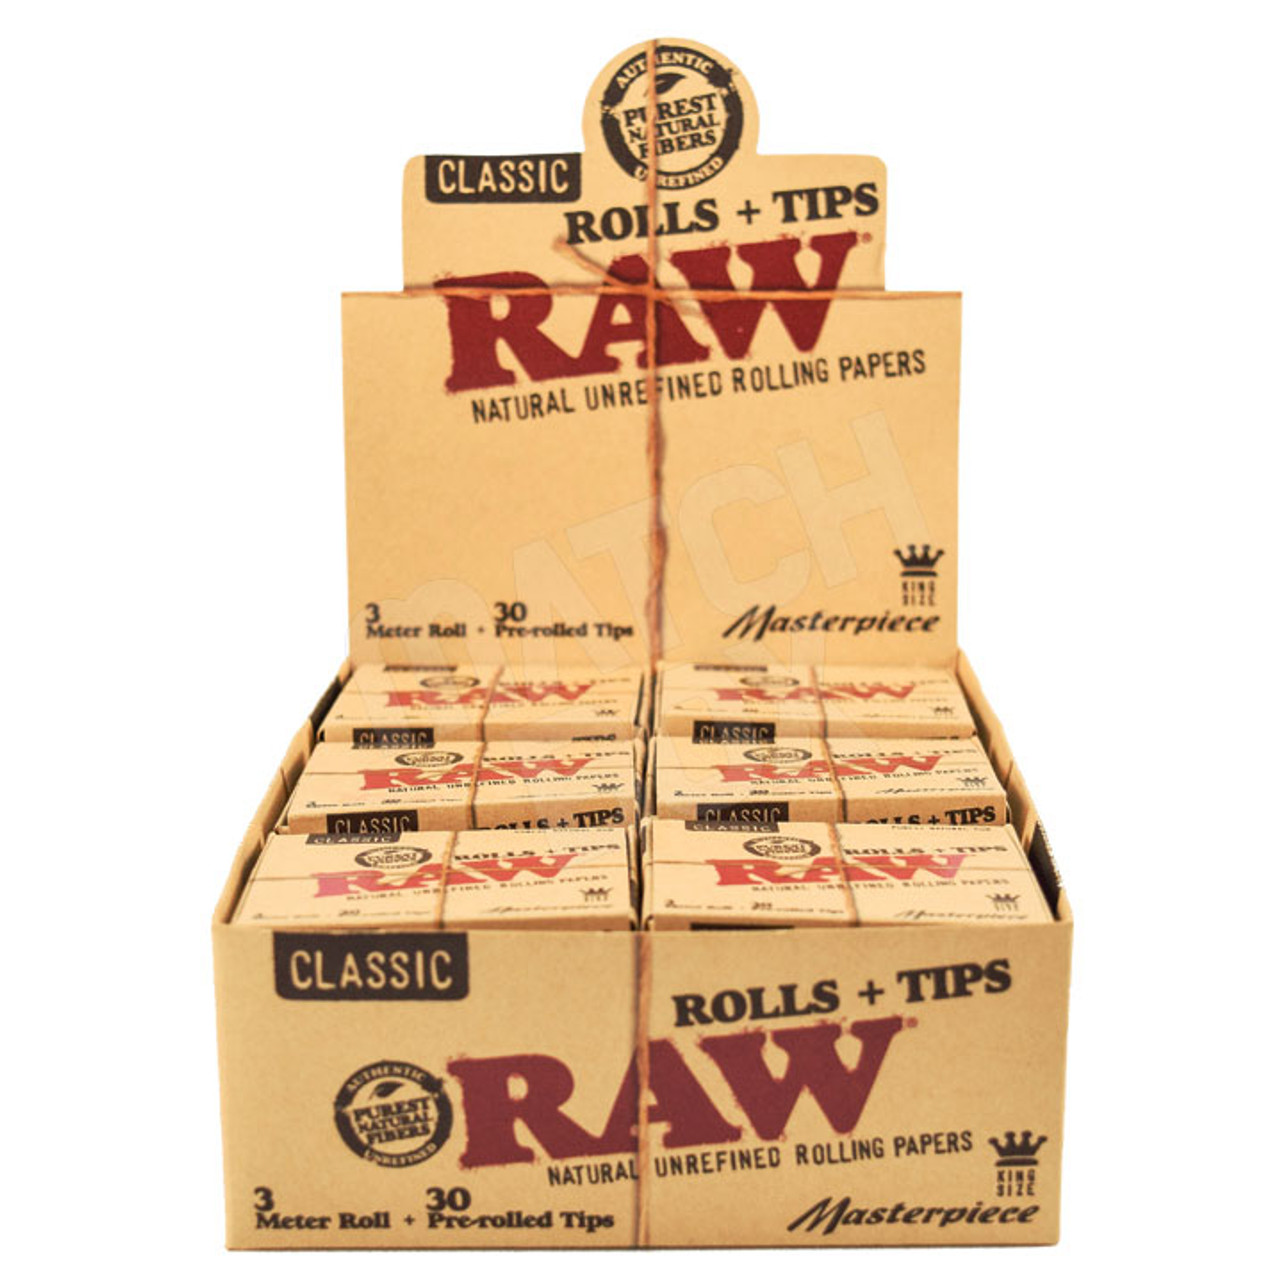 RAW Masterpiece KS Rolls with Prerolled Tips